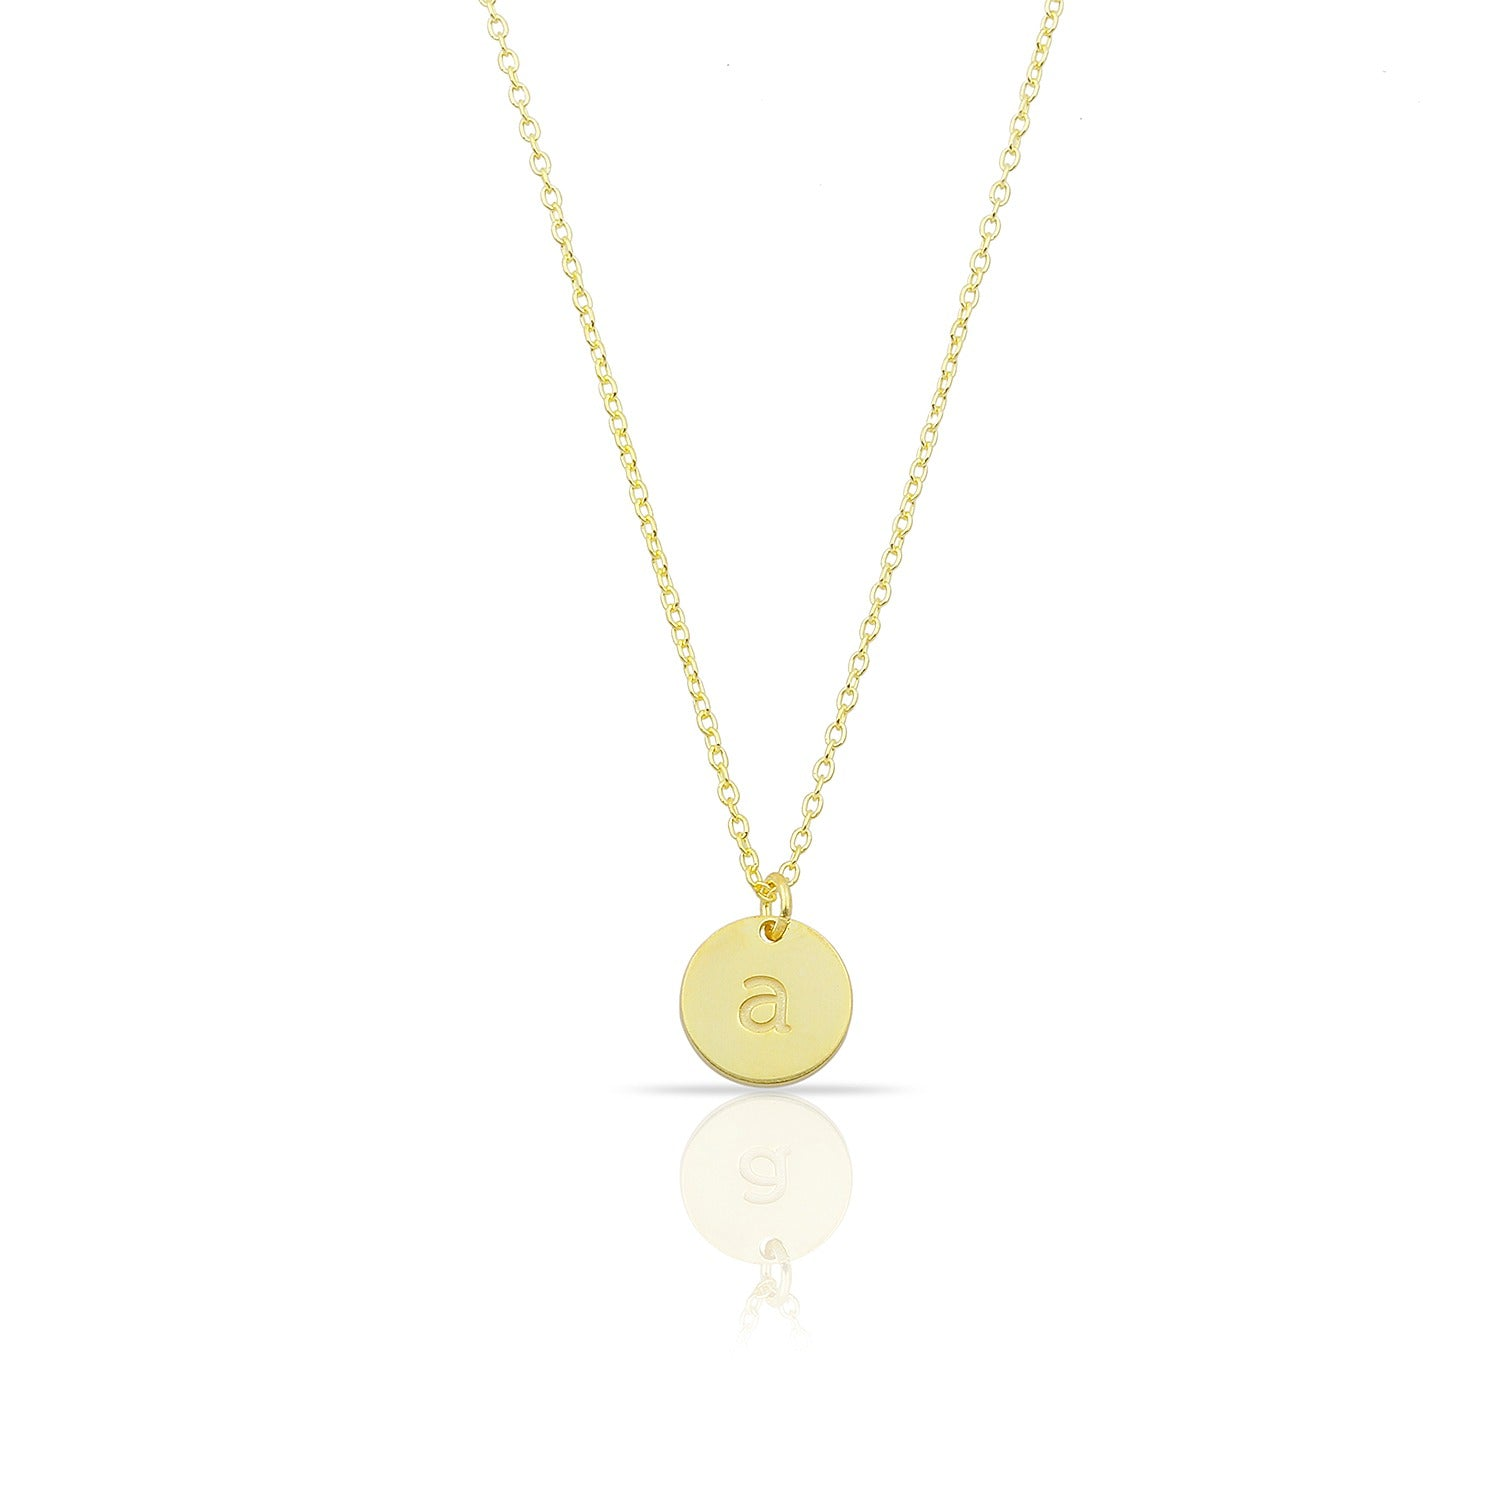 Simplistic Initial Coin Necklace